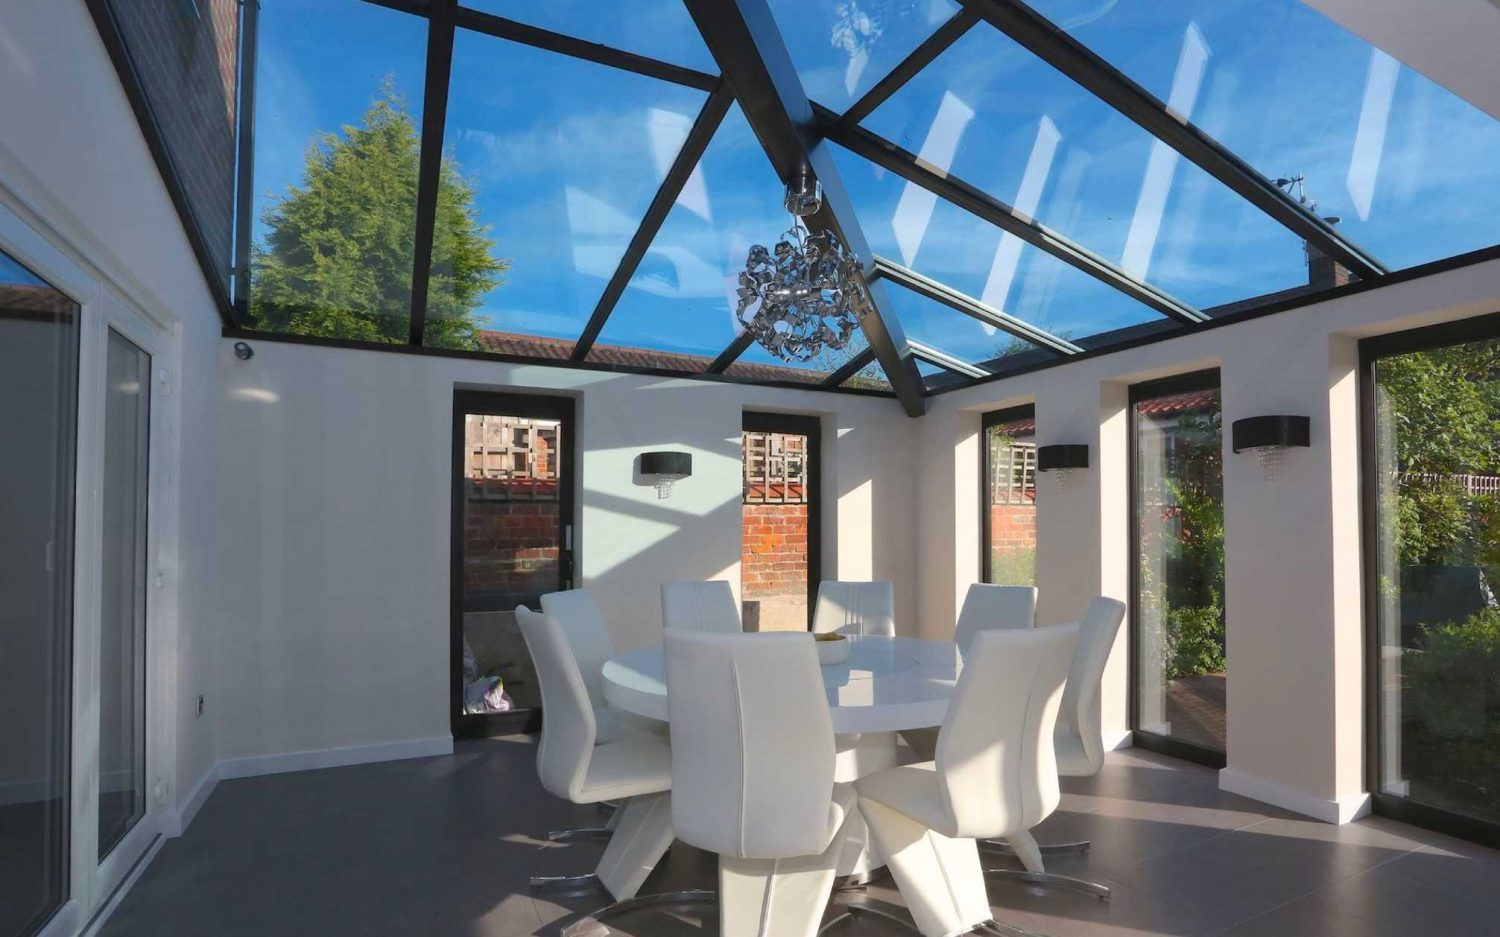 Glass Roof Extension Glass Roofing Lean Tos Aluminium Skylights Express Bi Folds